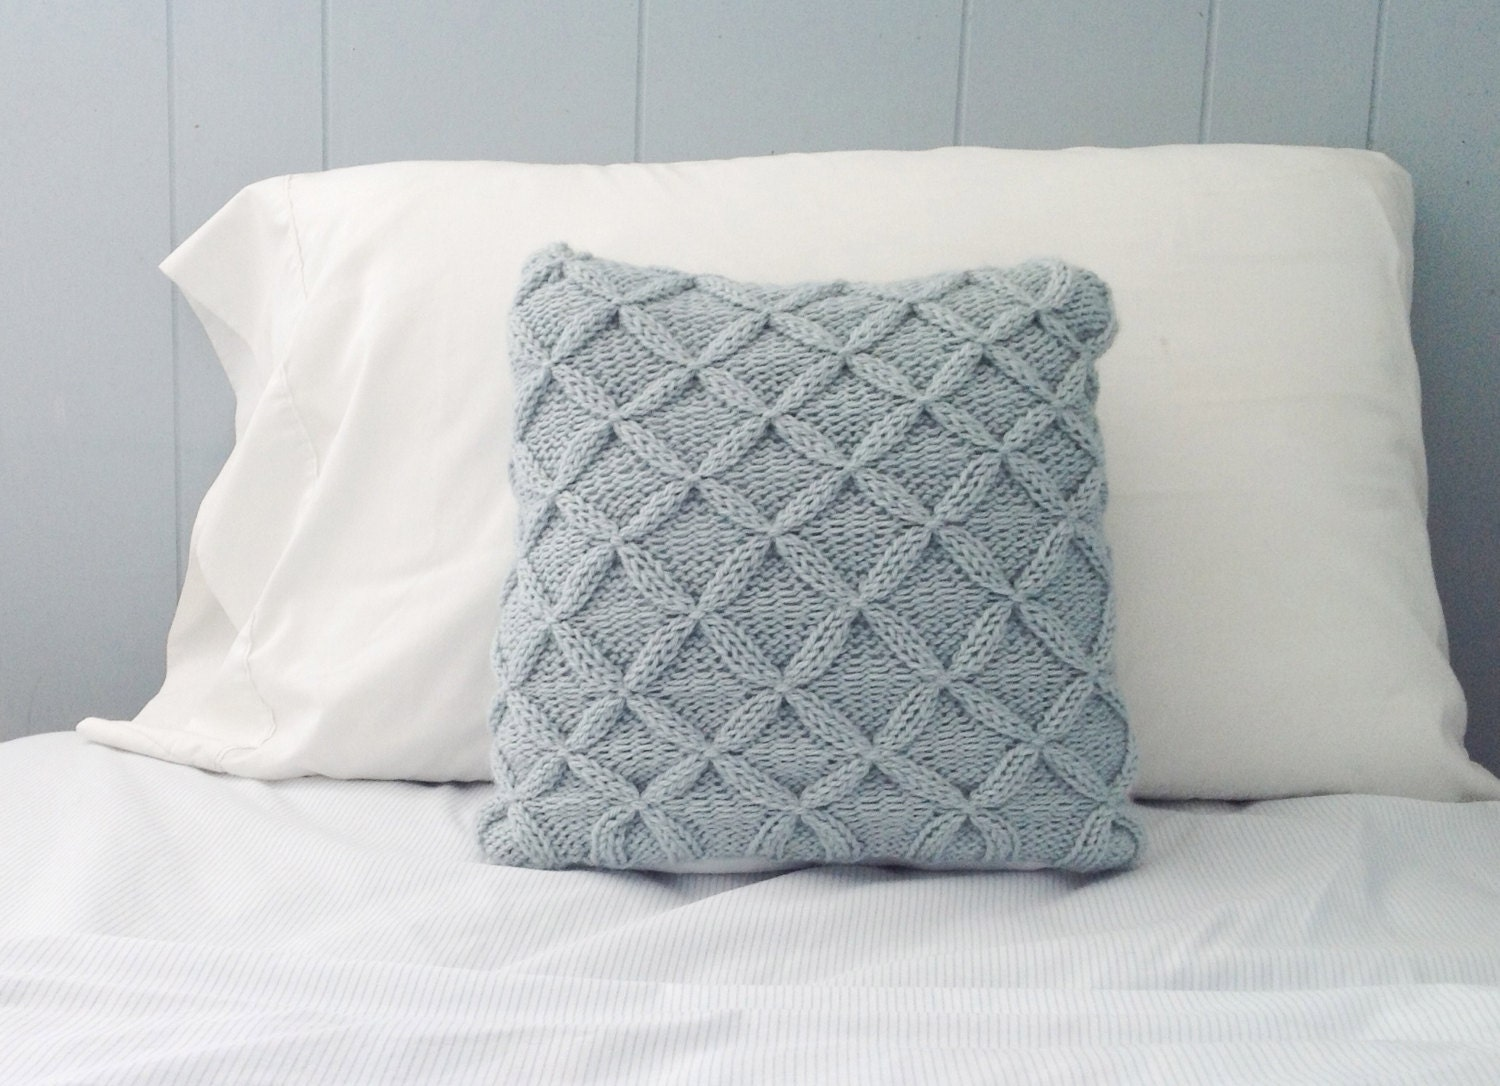 Knitting Patterns For Throw Pillows : Knit Blue Throw Pillow Decorative Pillow Cable by PreciousKnits